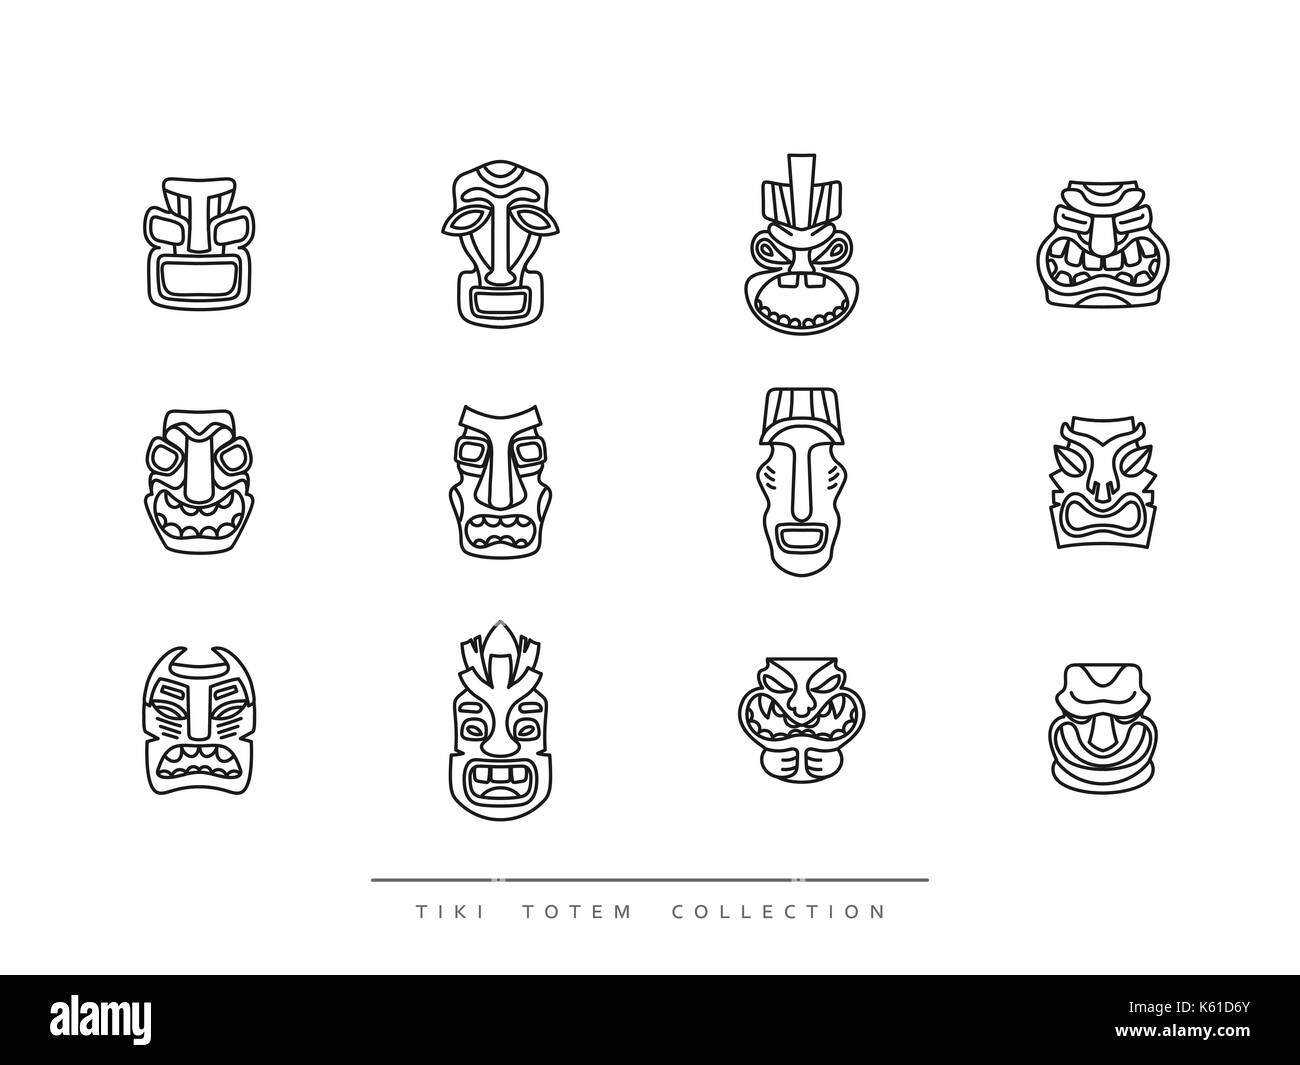 Collection Tiki Totem in linear style vector illustration - Stock Vector